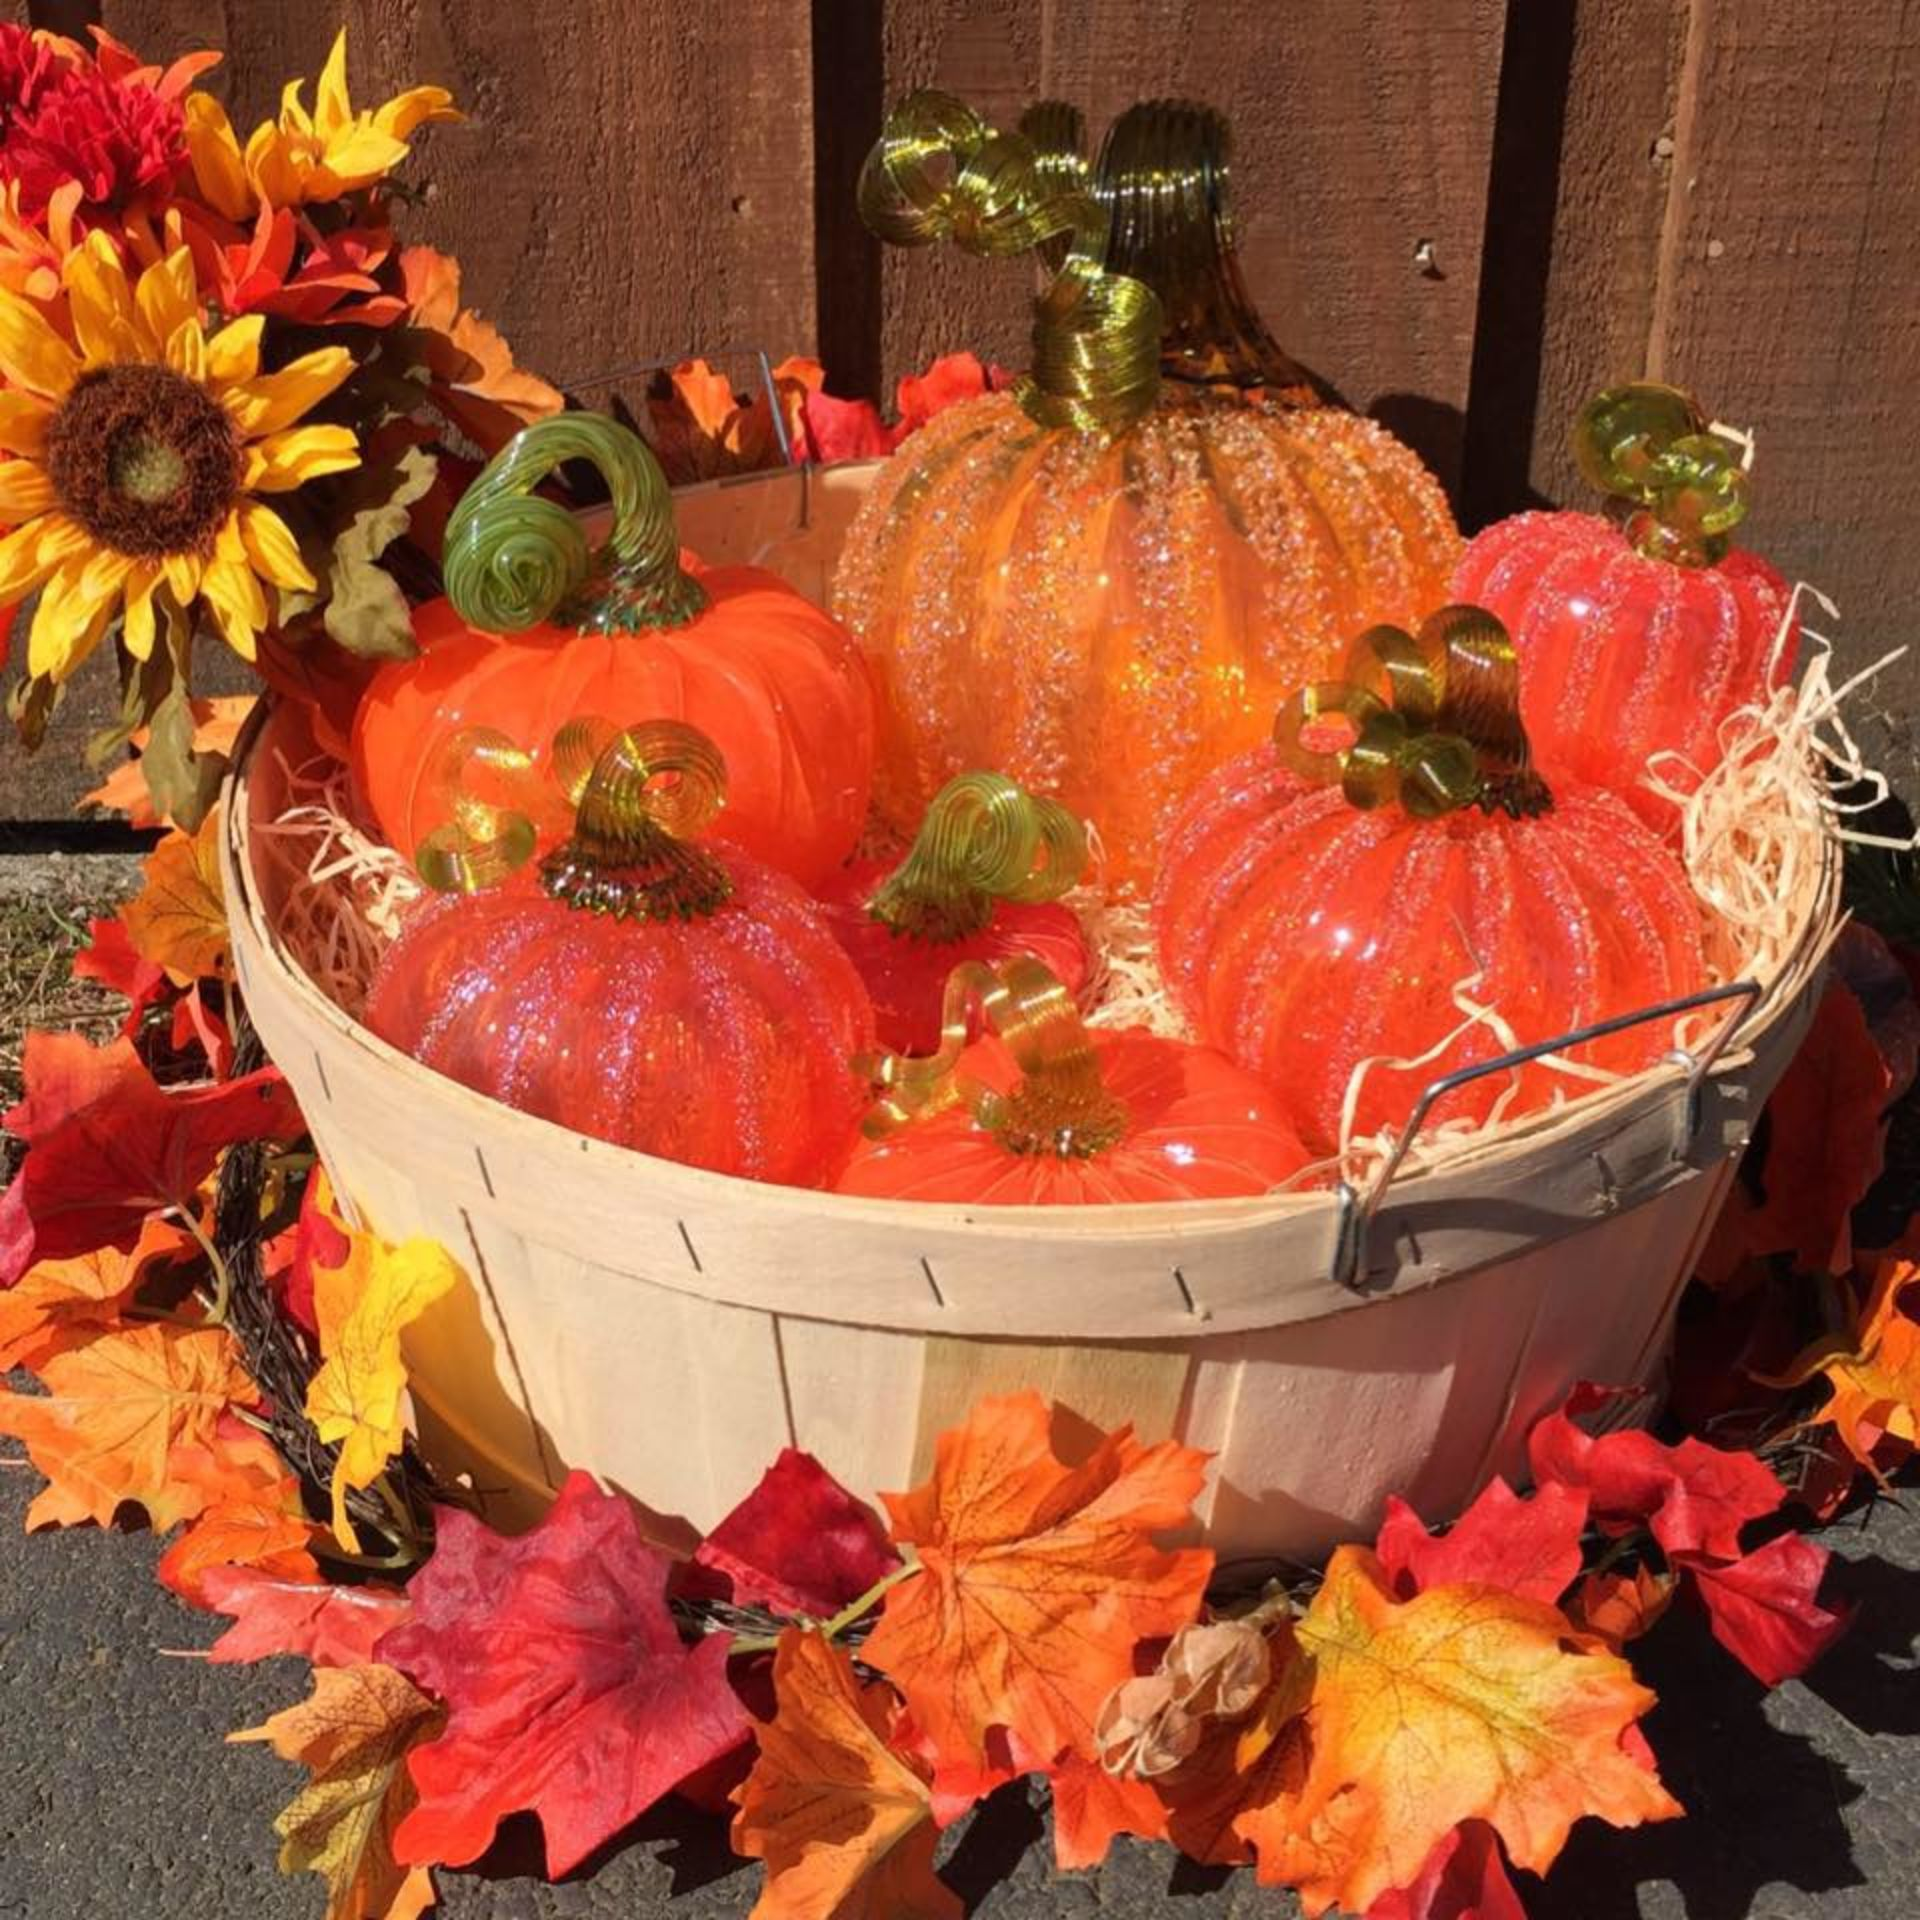 Gig Harbor Events to Kick off Your Autumn